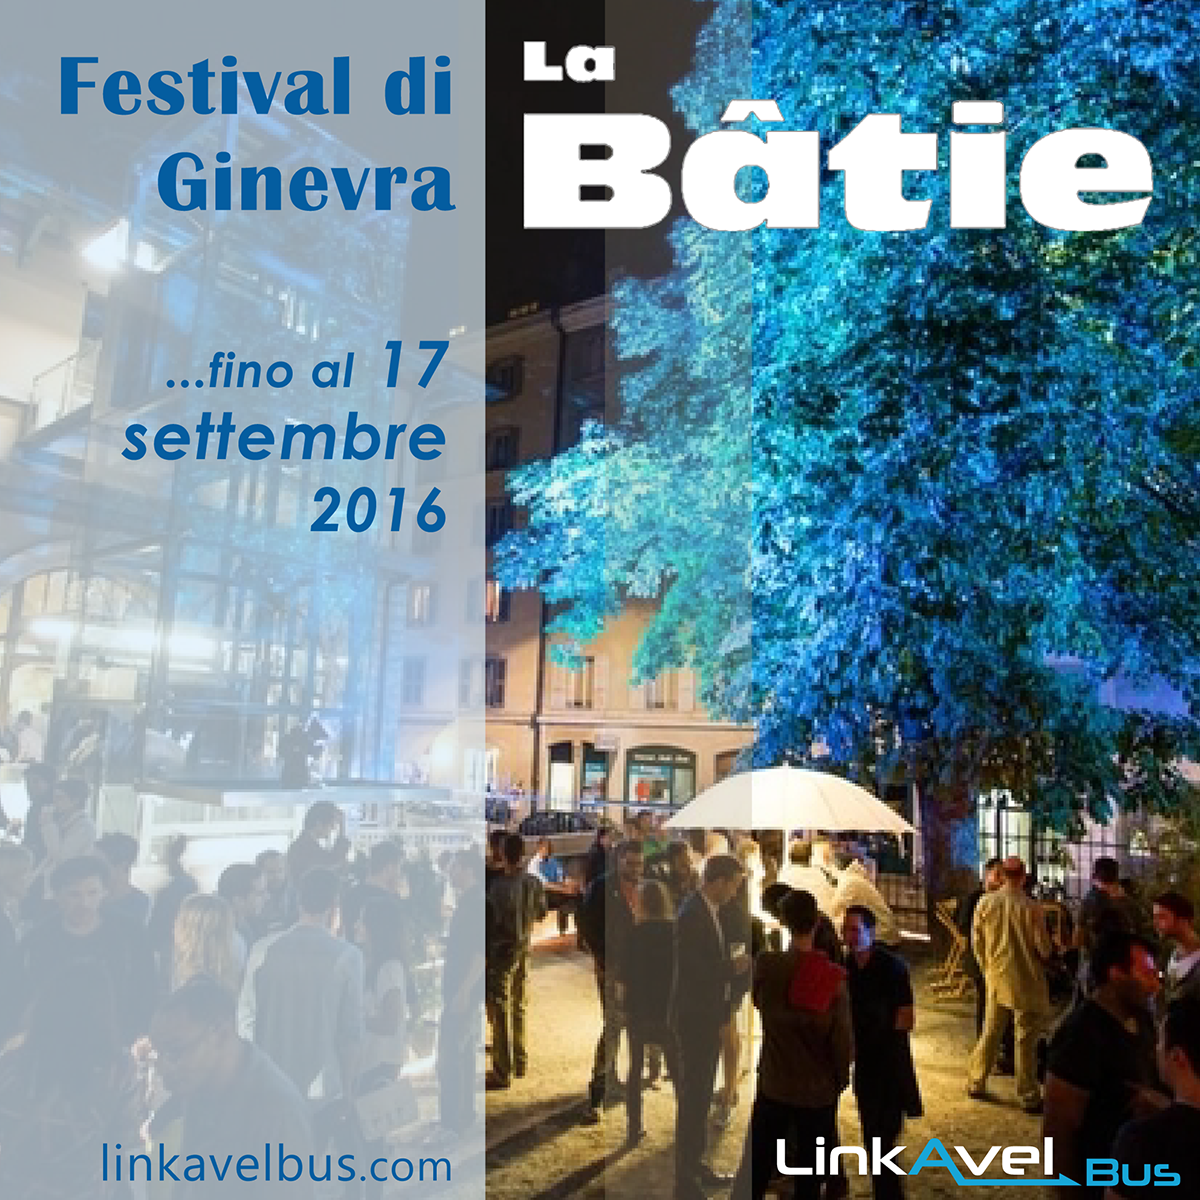 Festival di Ginevra. Ginevra in bus con Linkavel